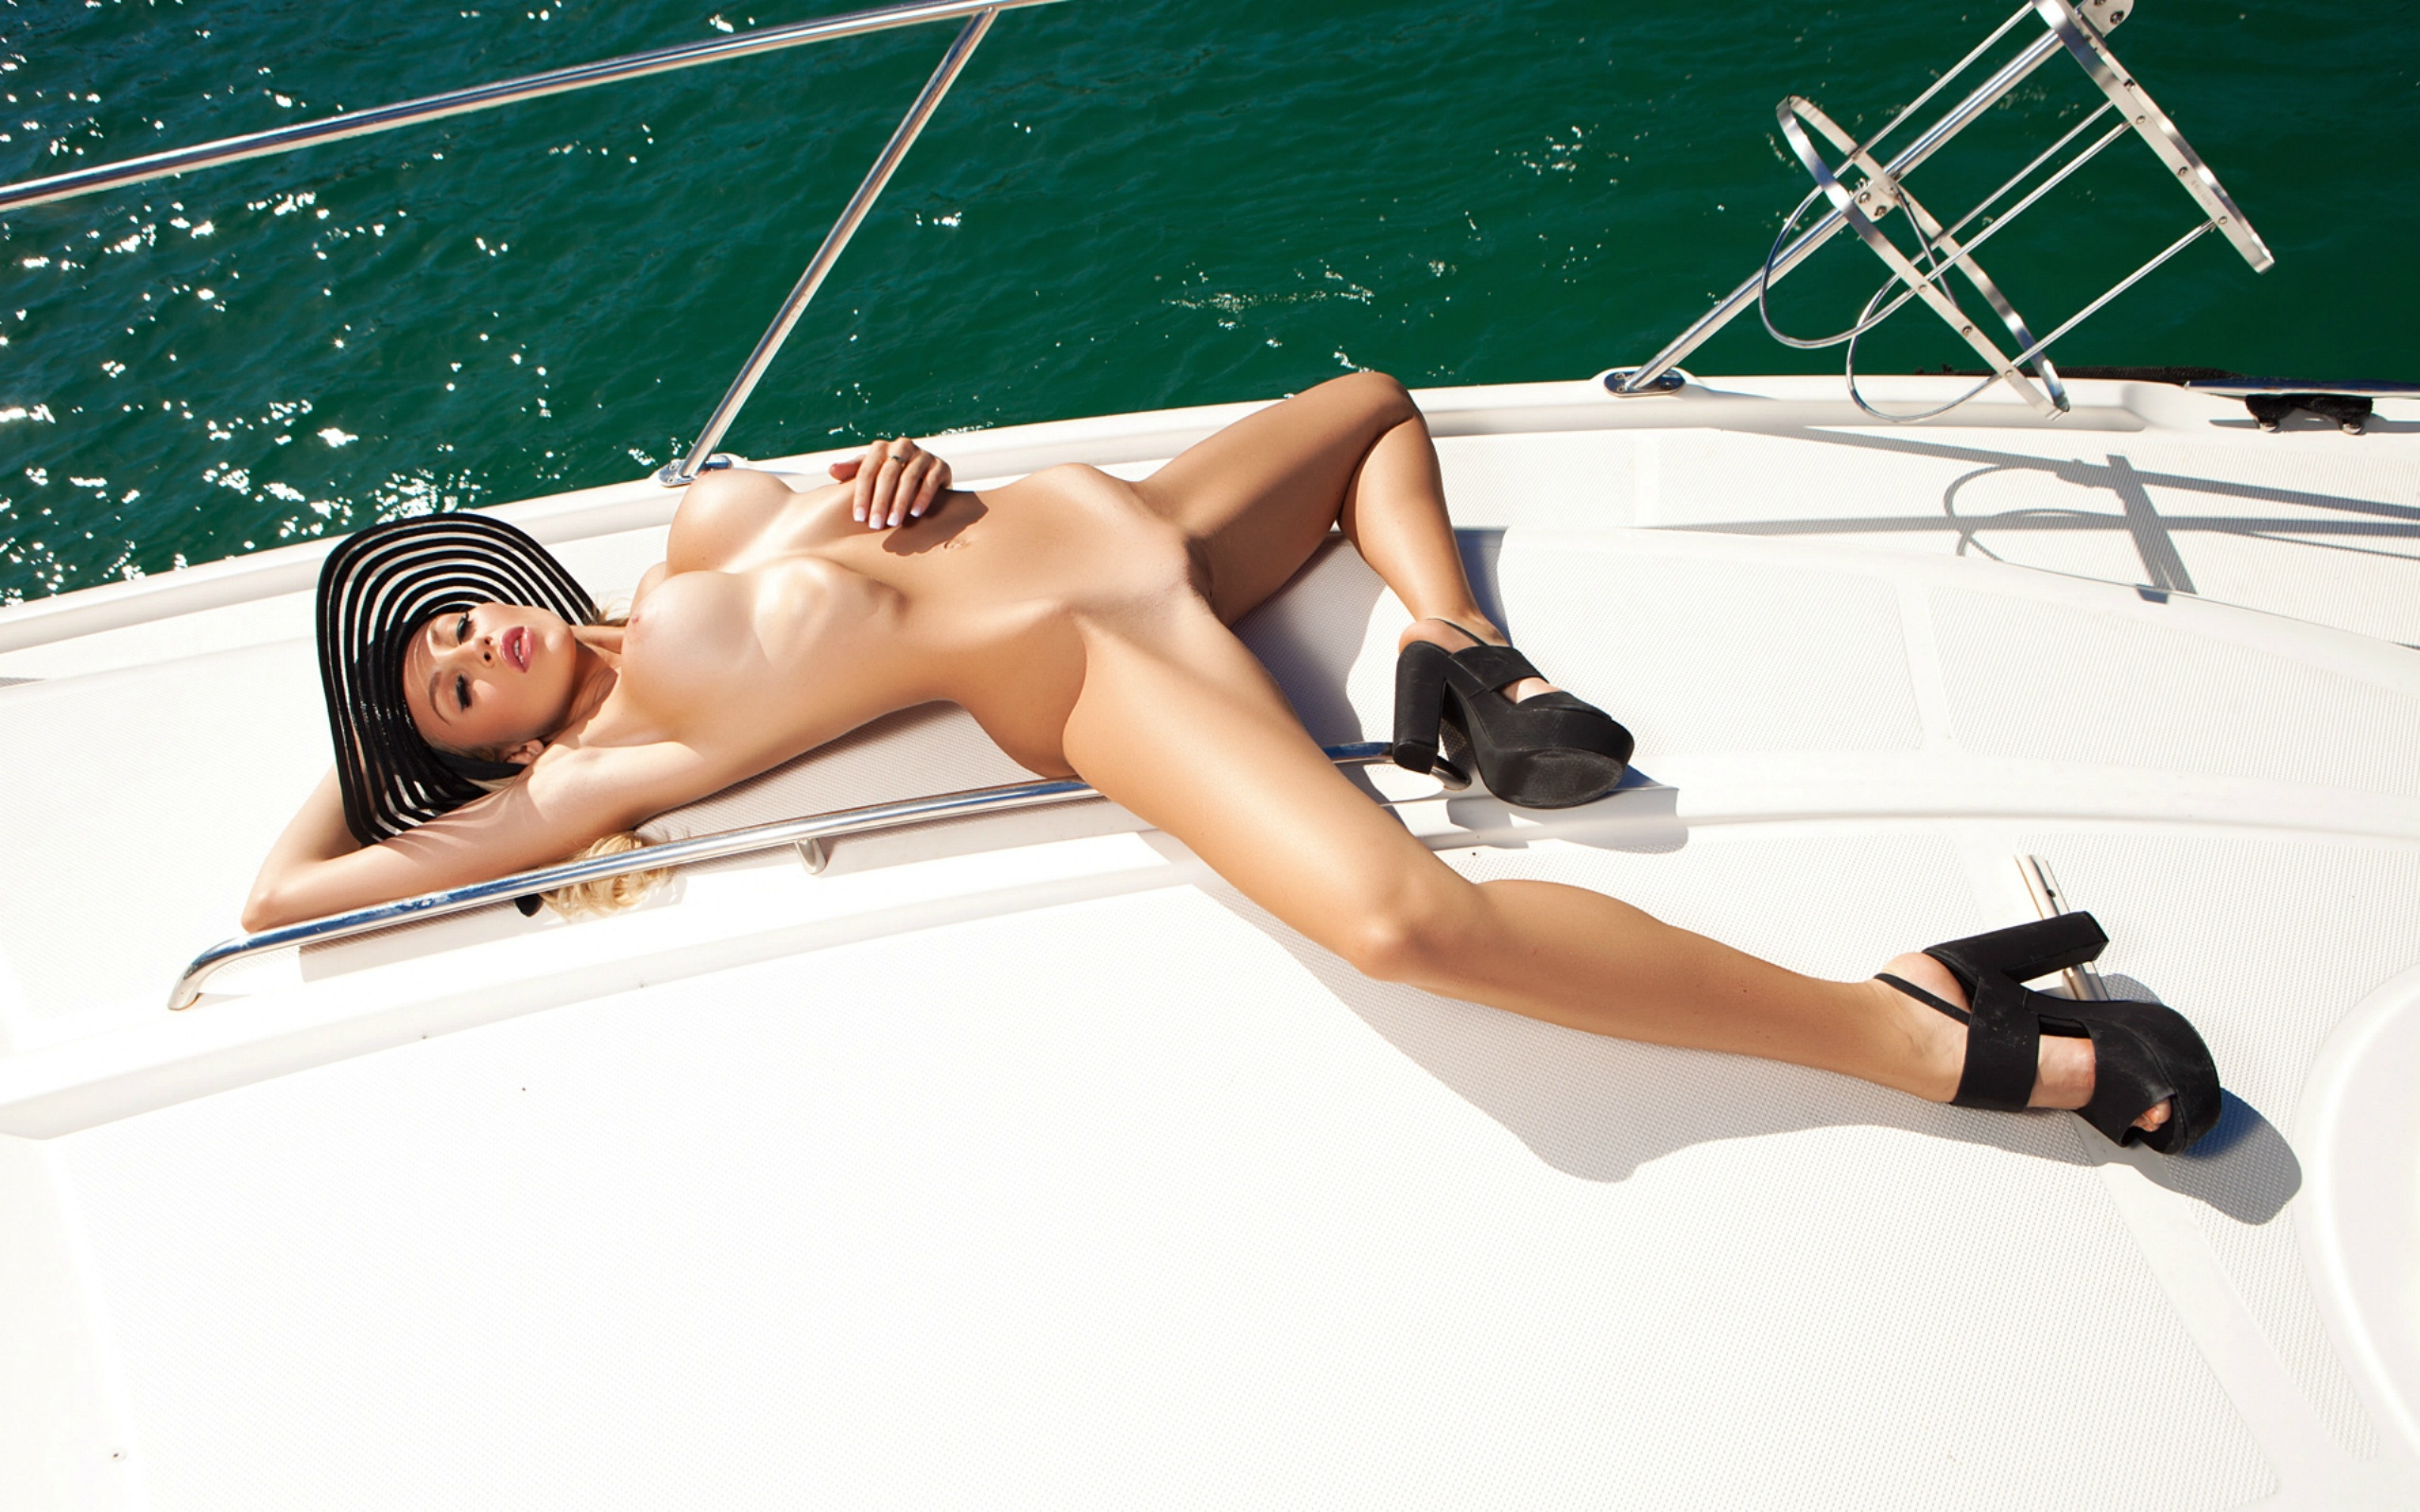 Wife mom new shaved pussy videos on yachts babe....so